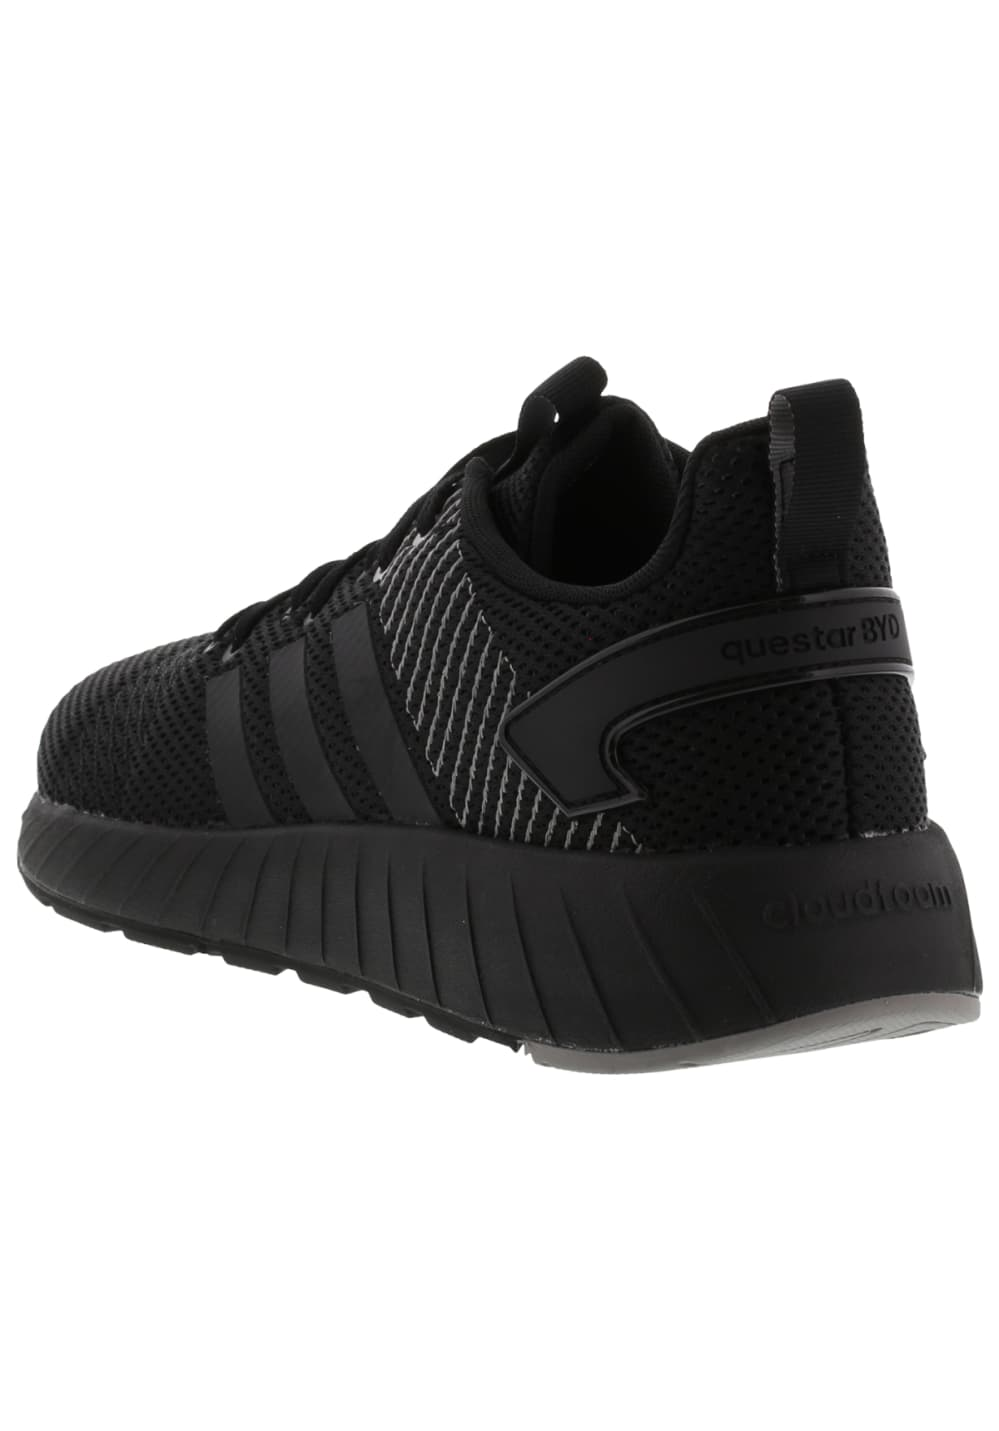 Running Homme Pour Chaussures Byd Noir Adidas Questar yv7b6gYf